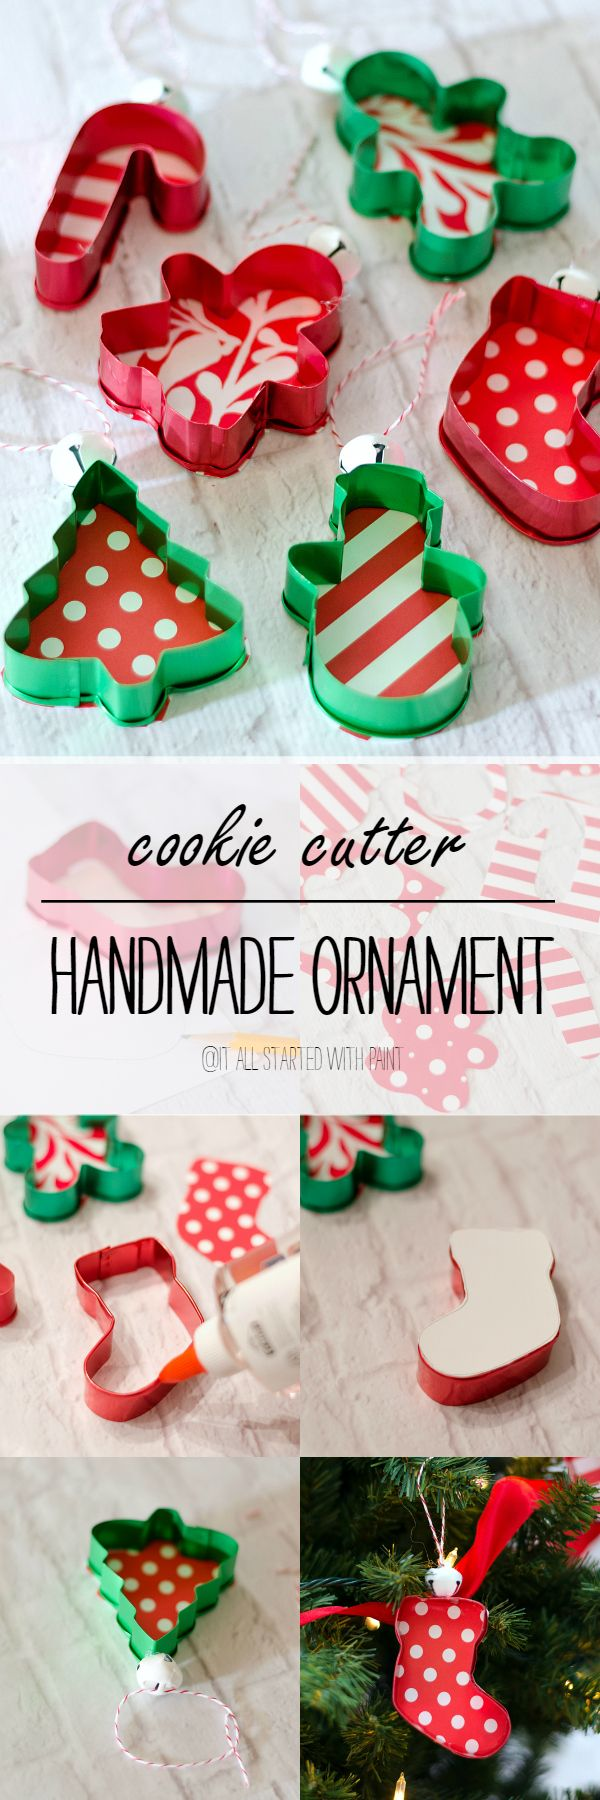 Handmade christmas tree ornaments ideas - Handmade Christmas Ornament Ideas